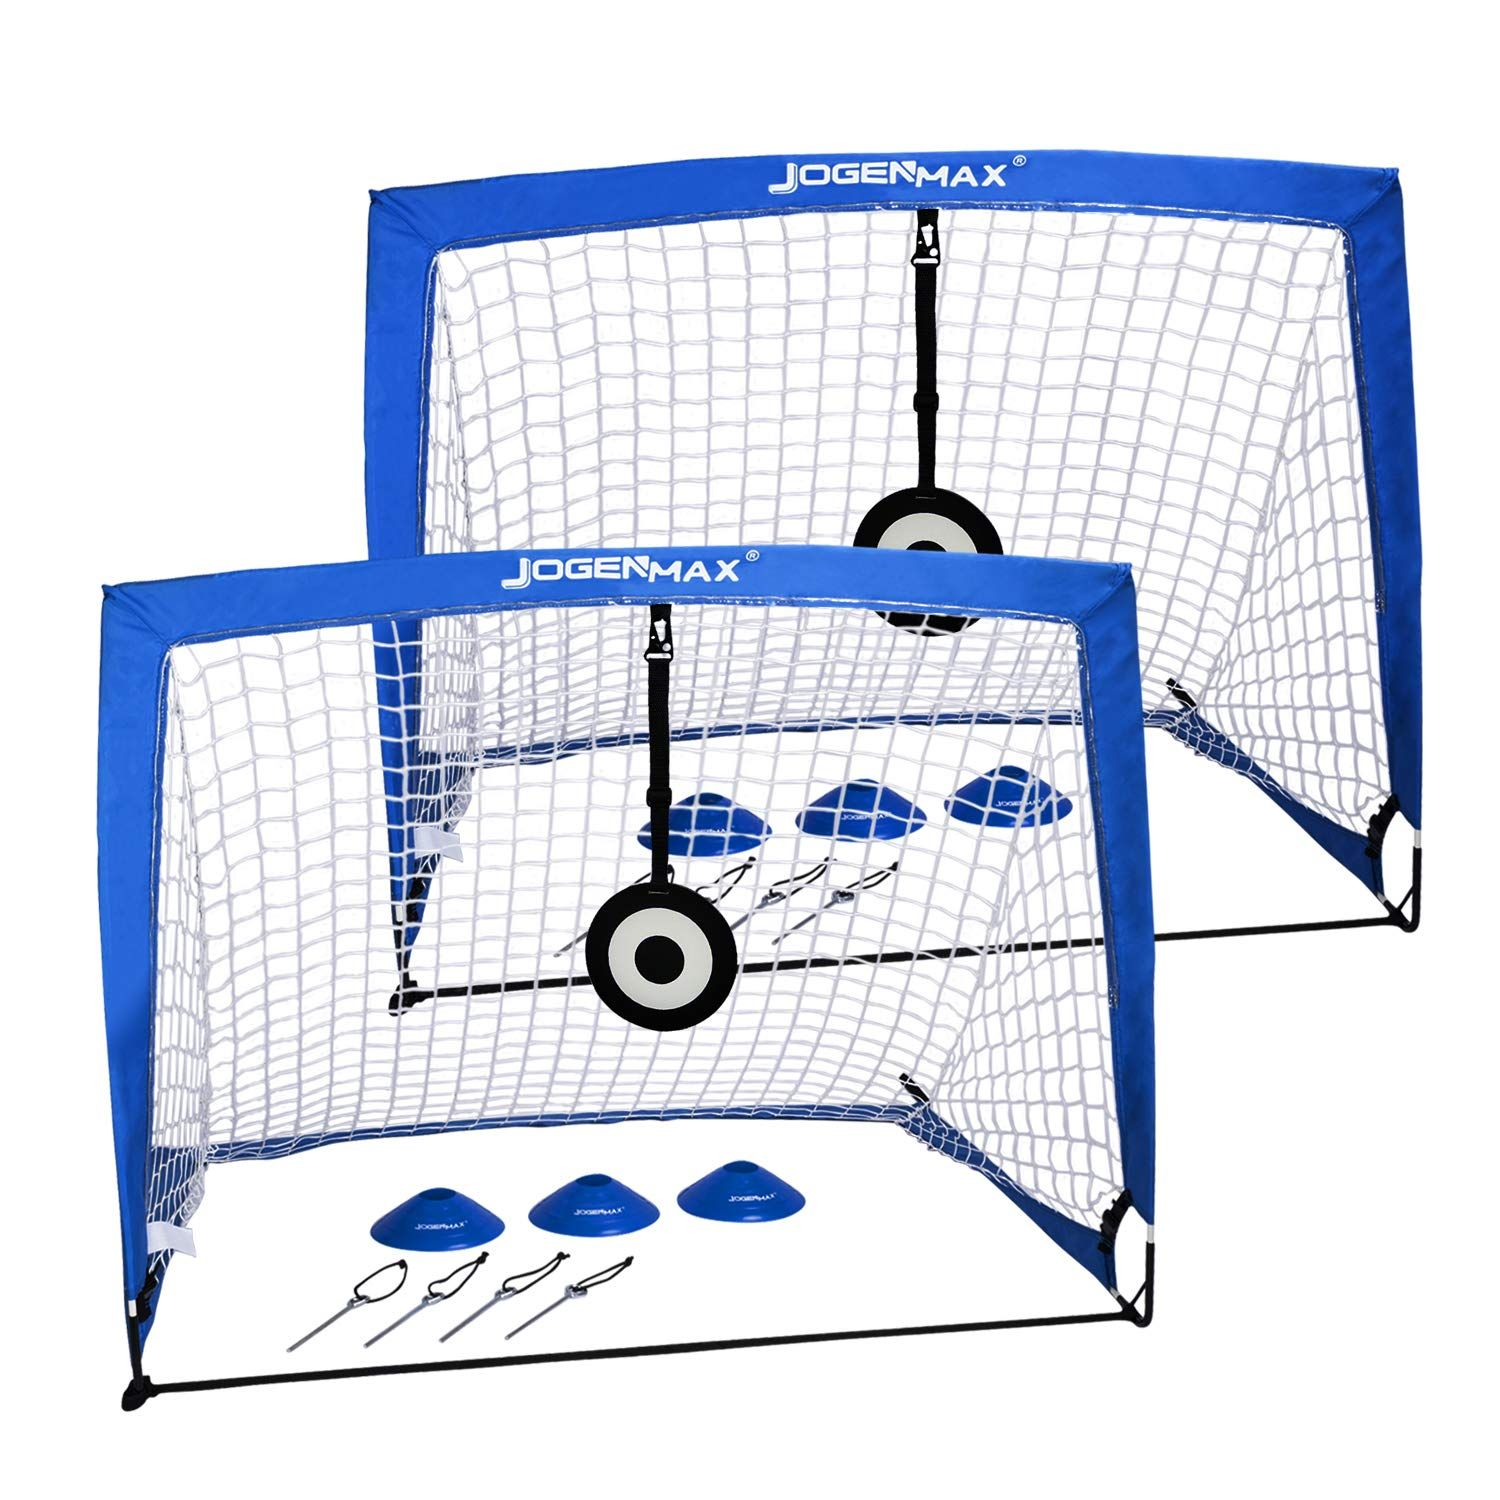 Jogenmax Portable Soccer Goal Pop Up Goal Nets With Aim Target Set Of 2 With Agility Training Cones Led Lights And Portable Soccer Goals Goal Net Soccer Goal